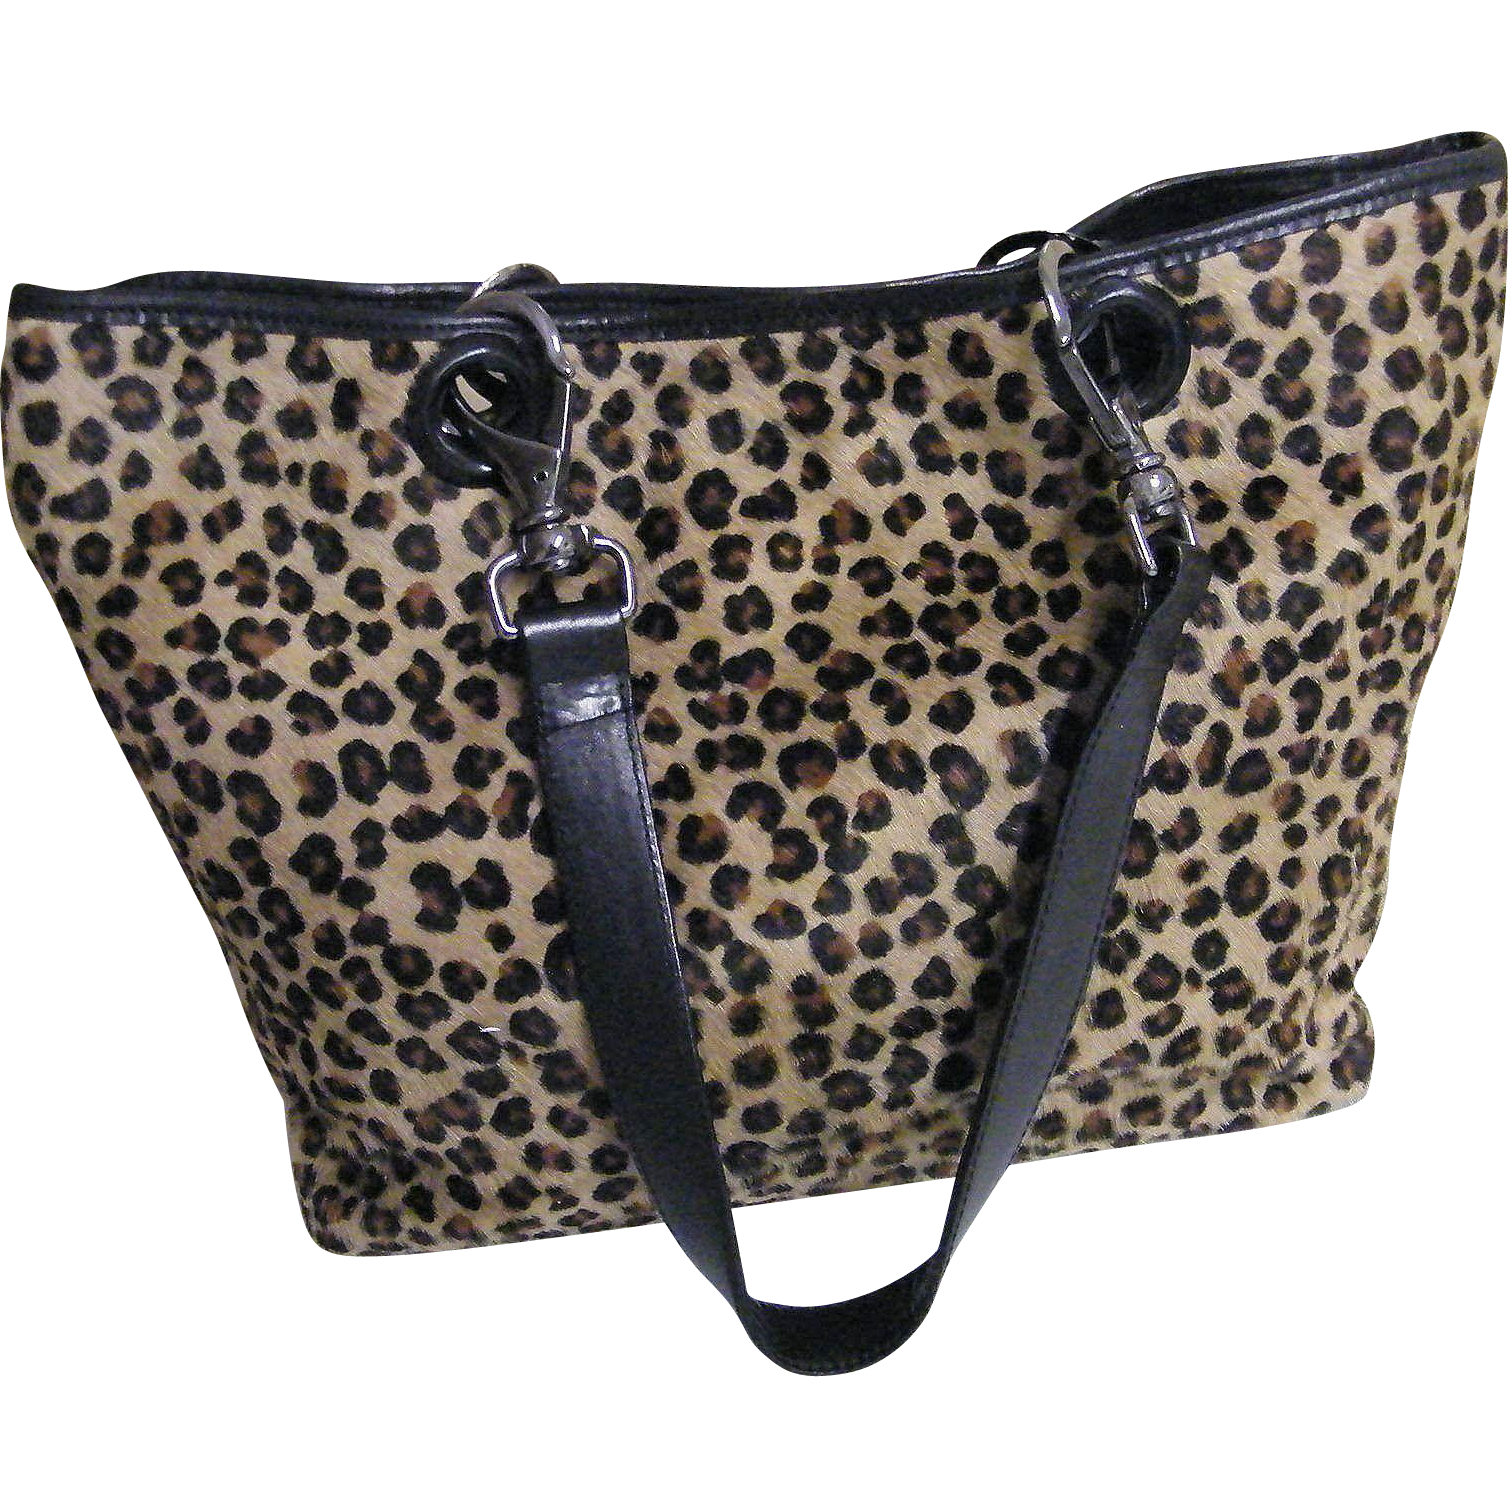 Faux Leopard Tote Bag By Paola Del Lungo